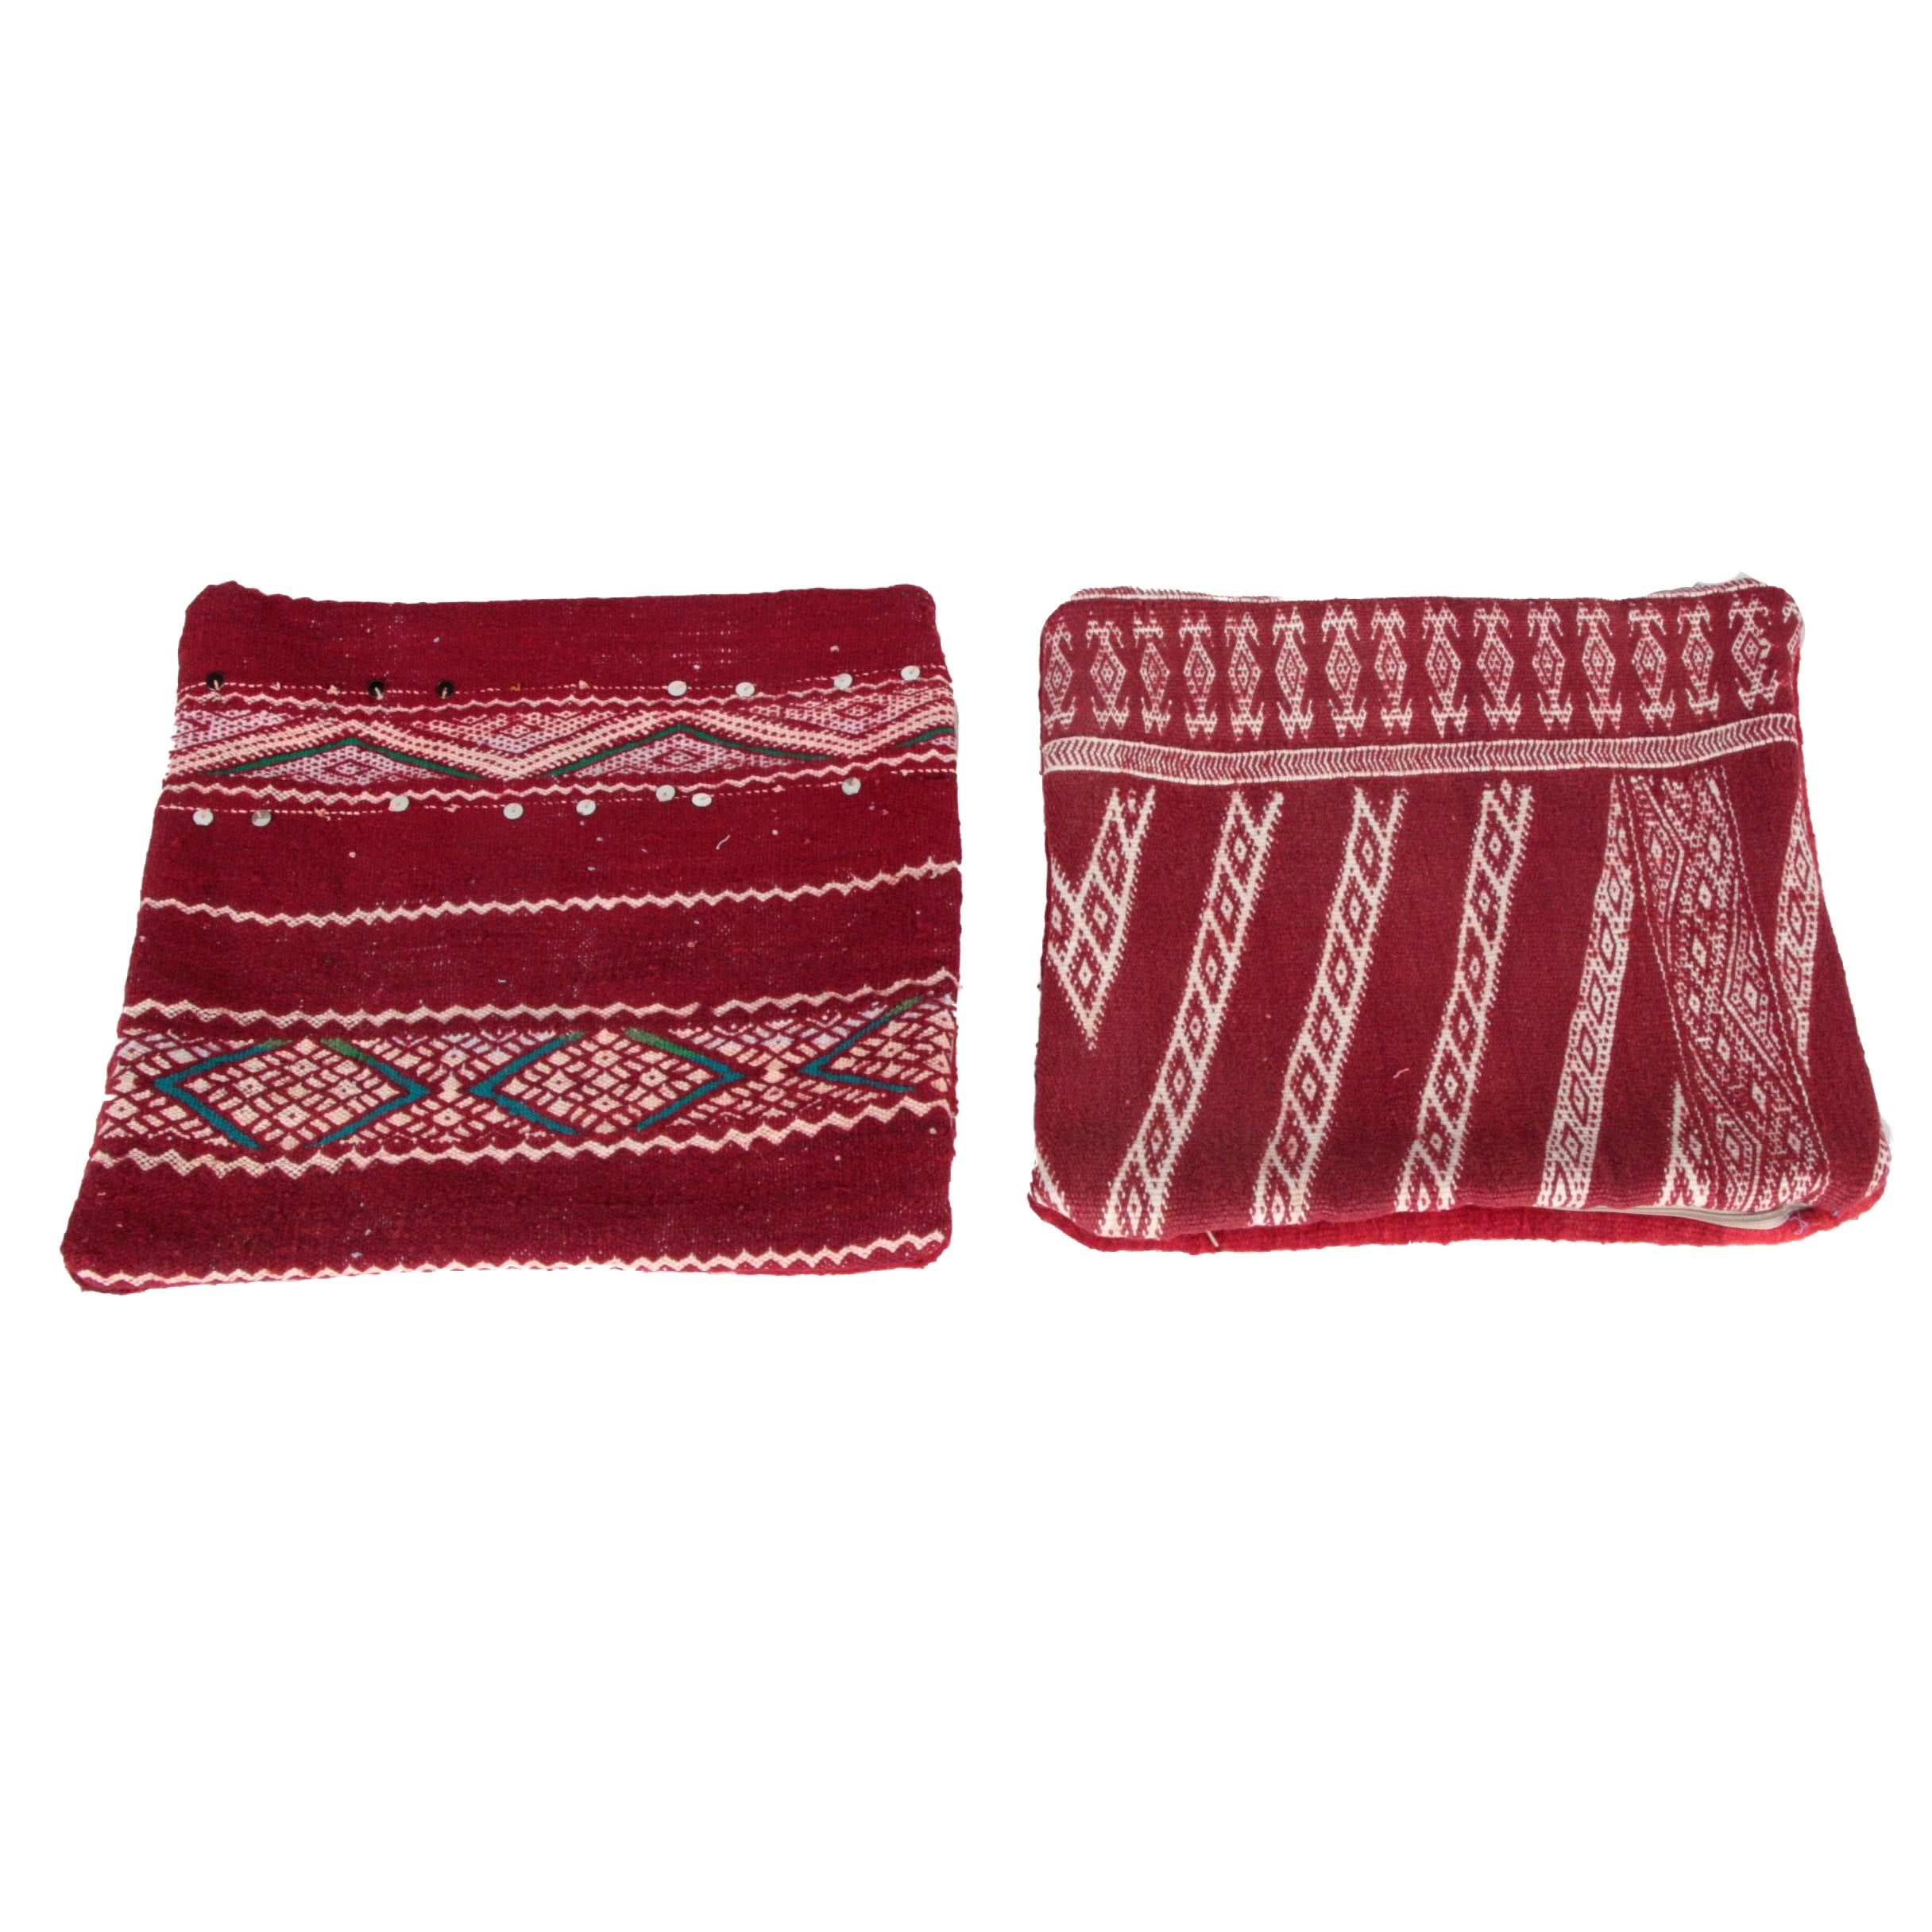 Hand Woven Central Asian Accent Pillow Cases